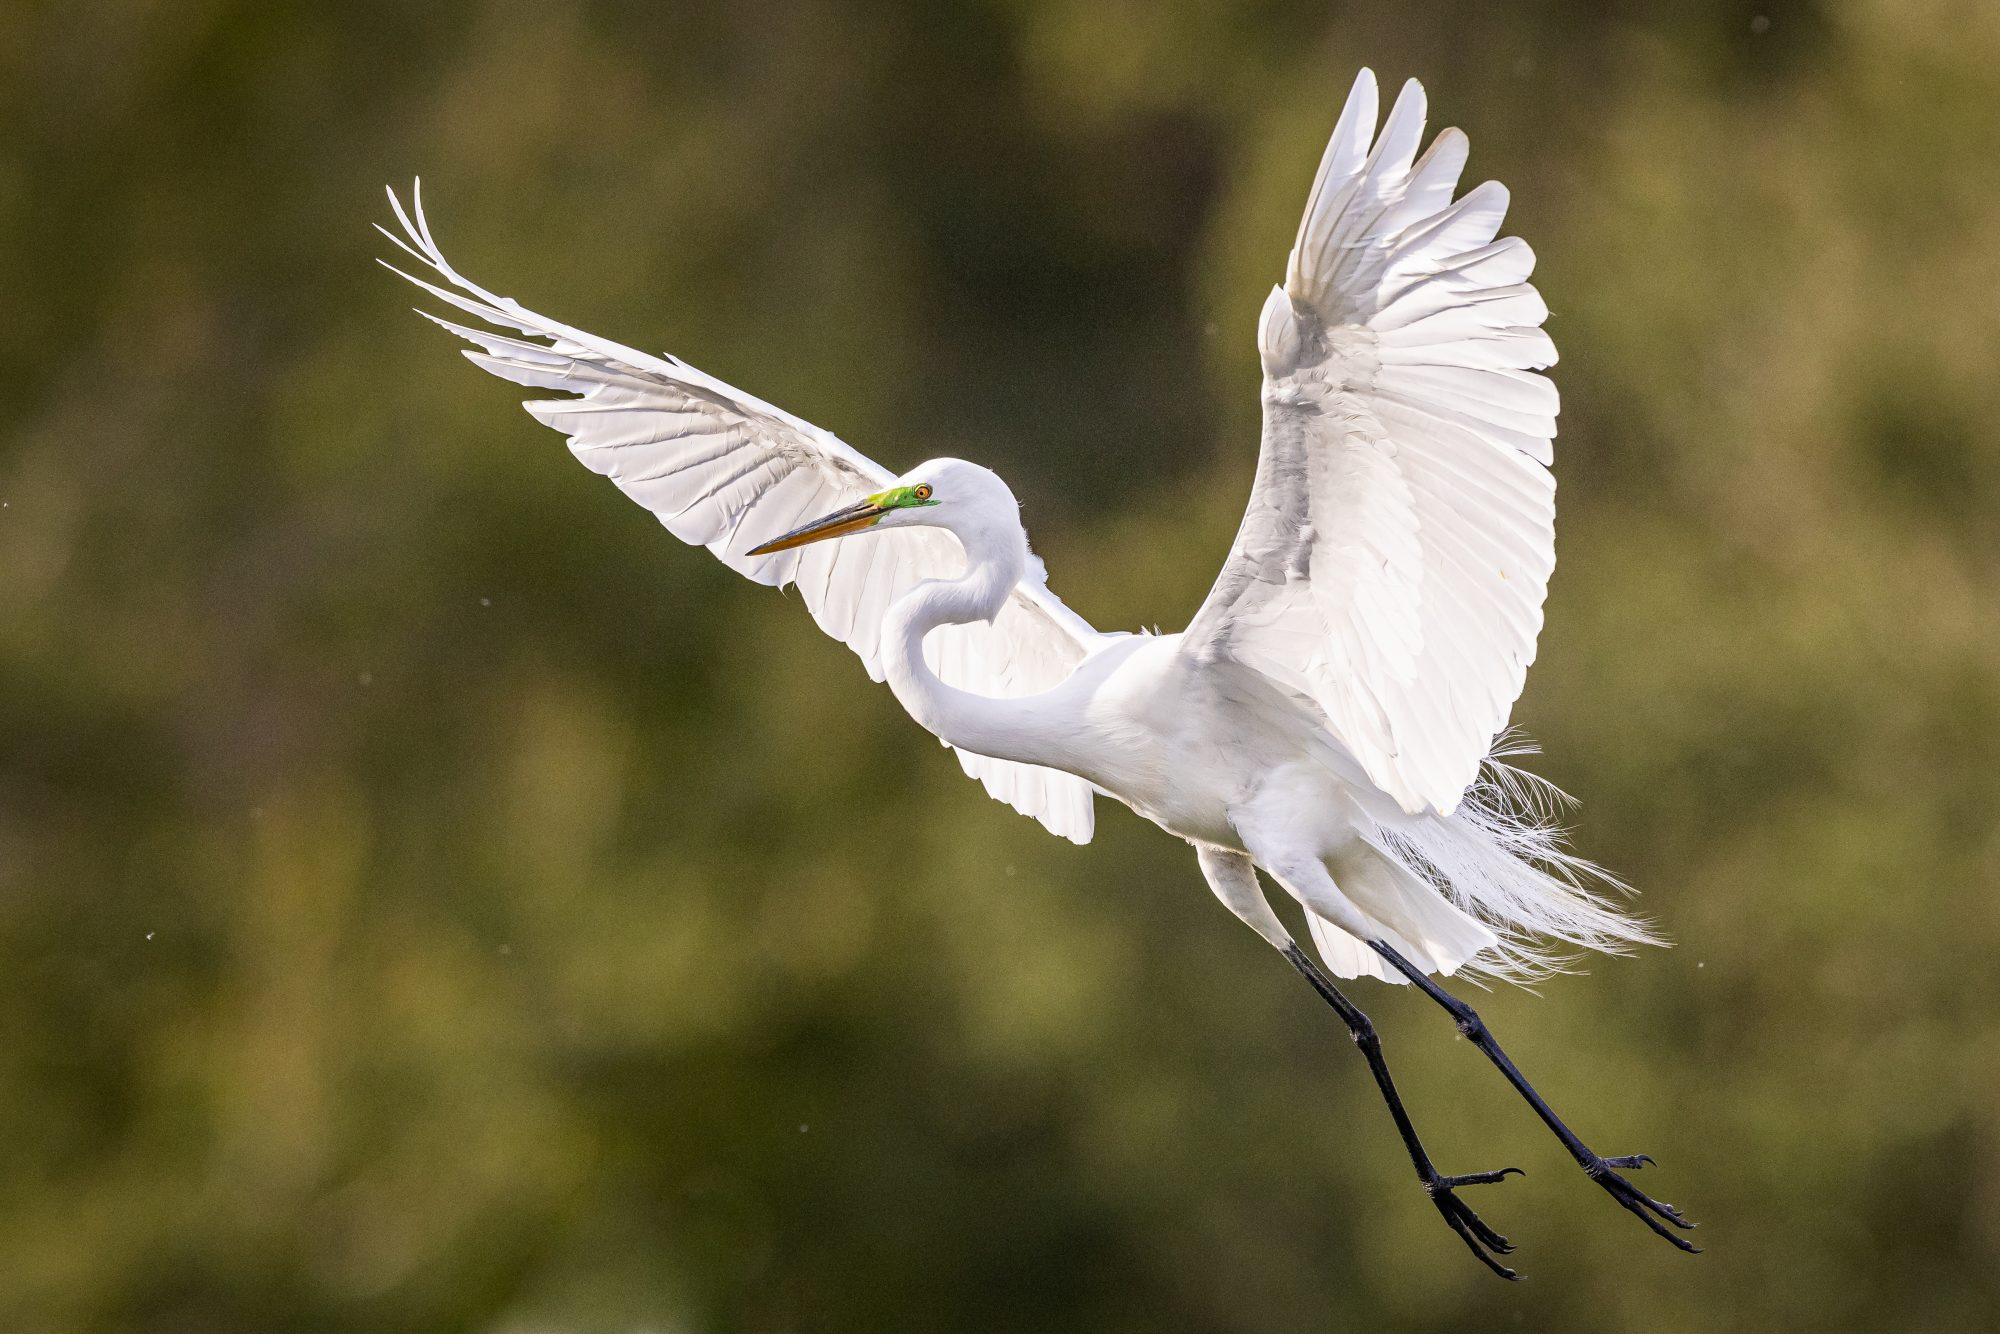 Great Egret Coming In for Landing with Outstretched Wings